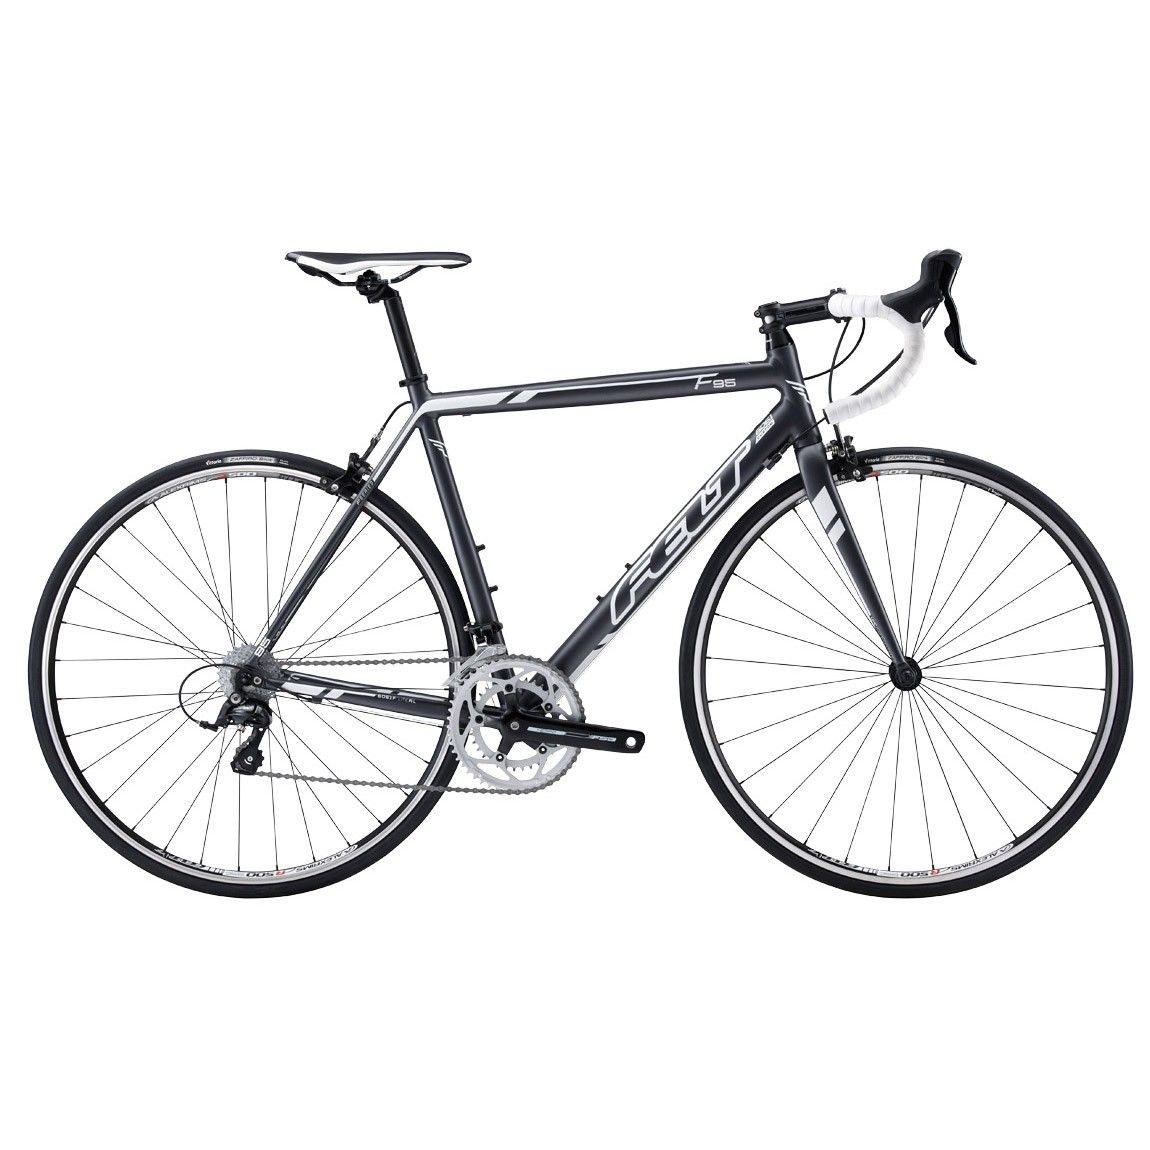 Felt F95 Road Bike Sleek Stylish And Great Spec For The Money